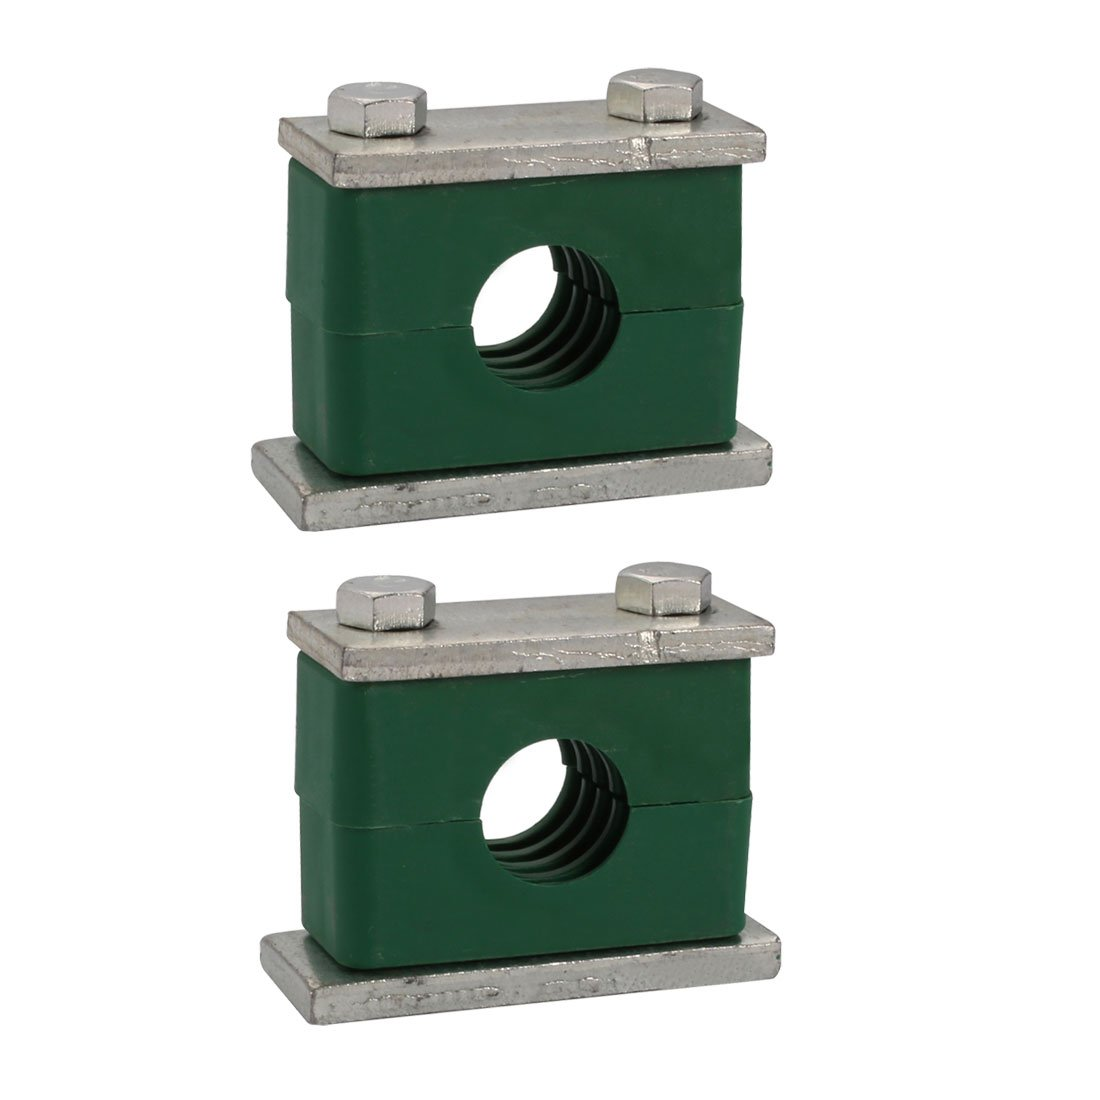 uxcell 25mm Fitting Dia Polypropylene Aluminum Heavy Series Hose Pipe Tube Clamp 2pcs